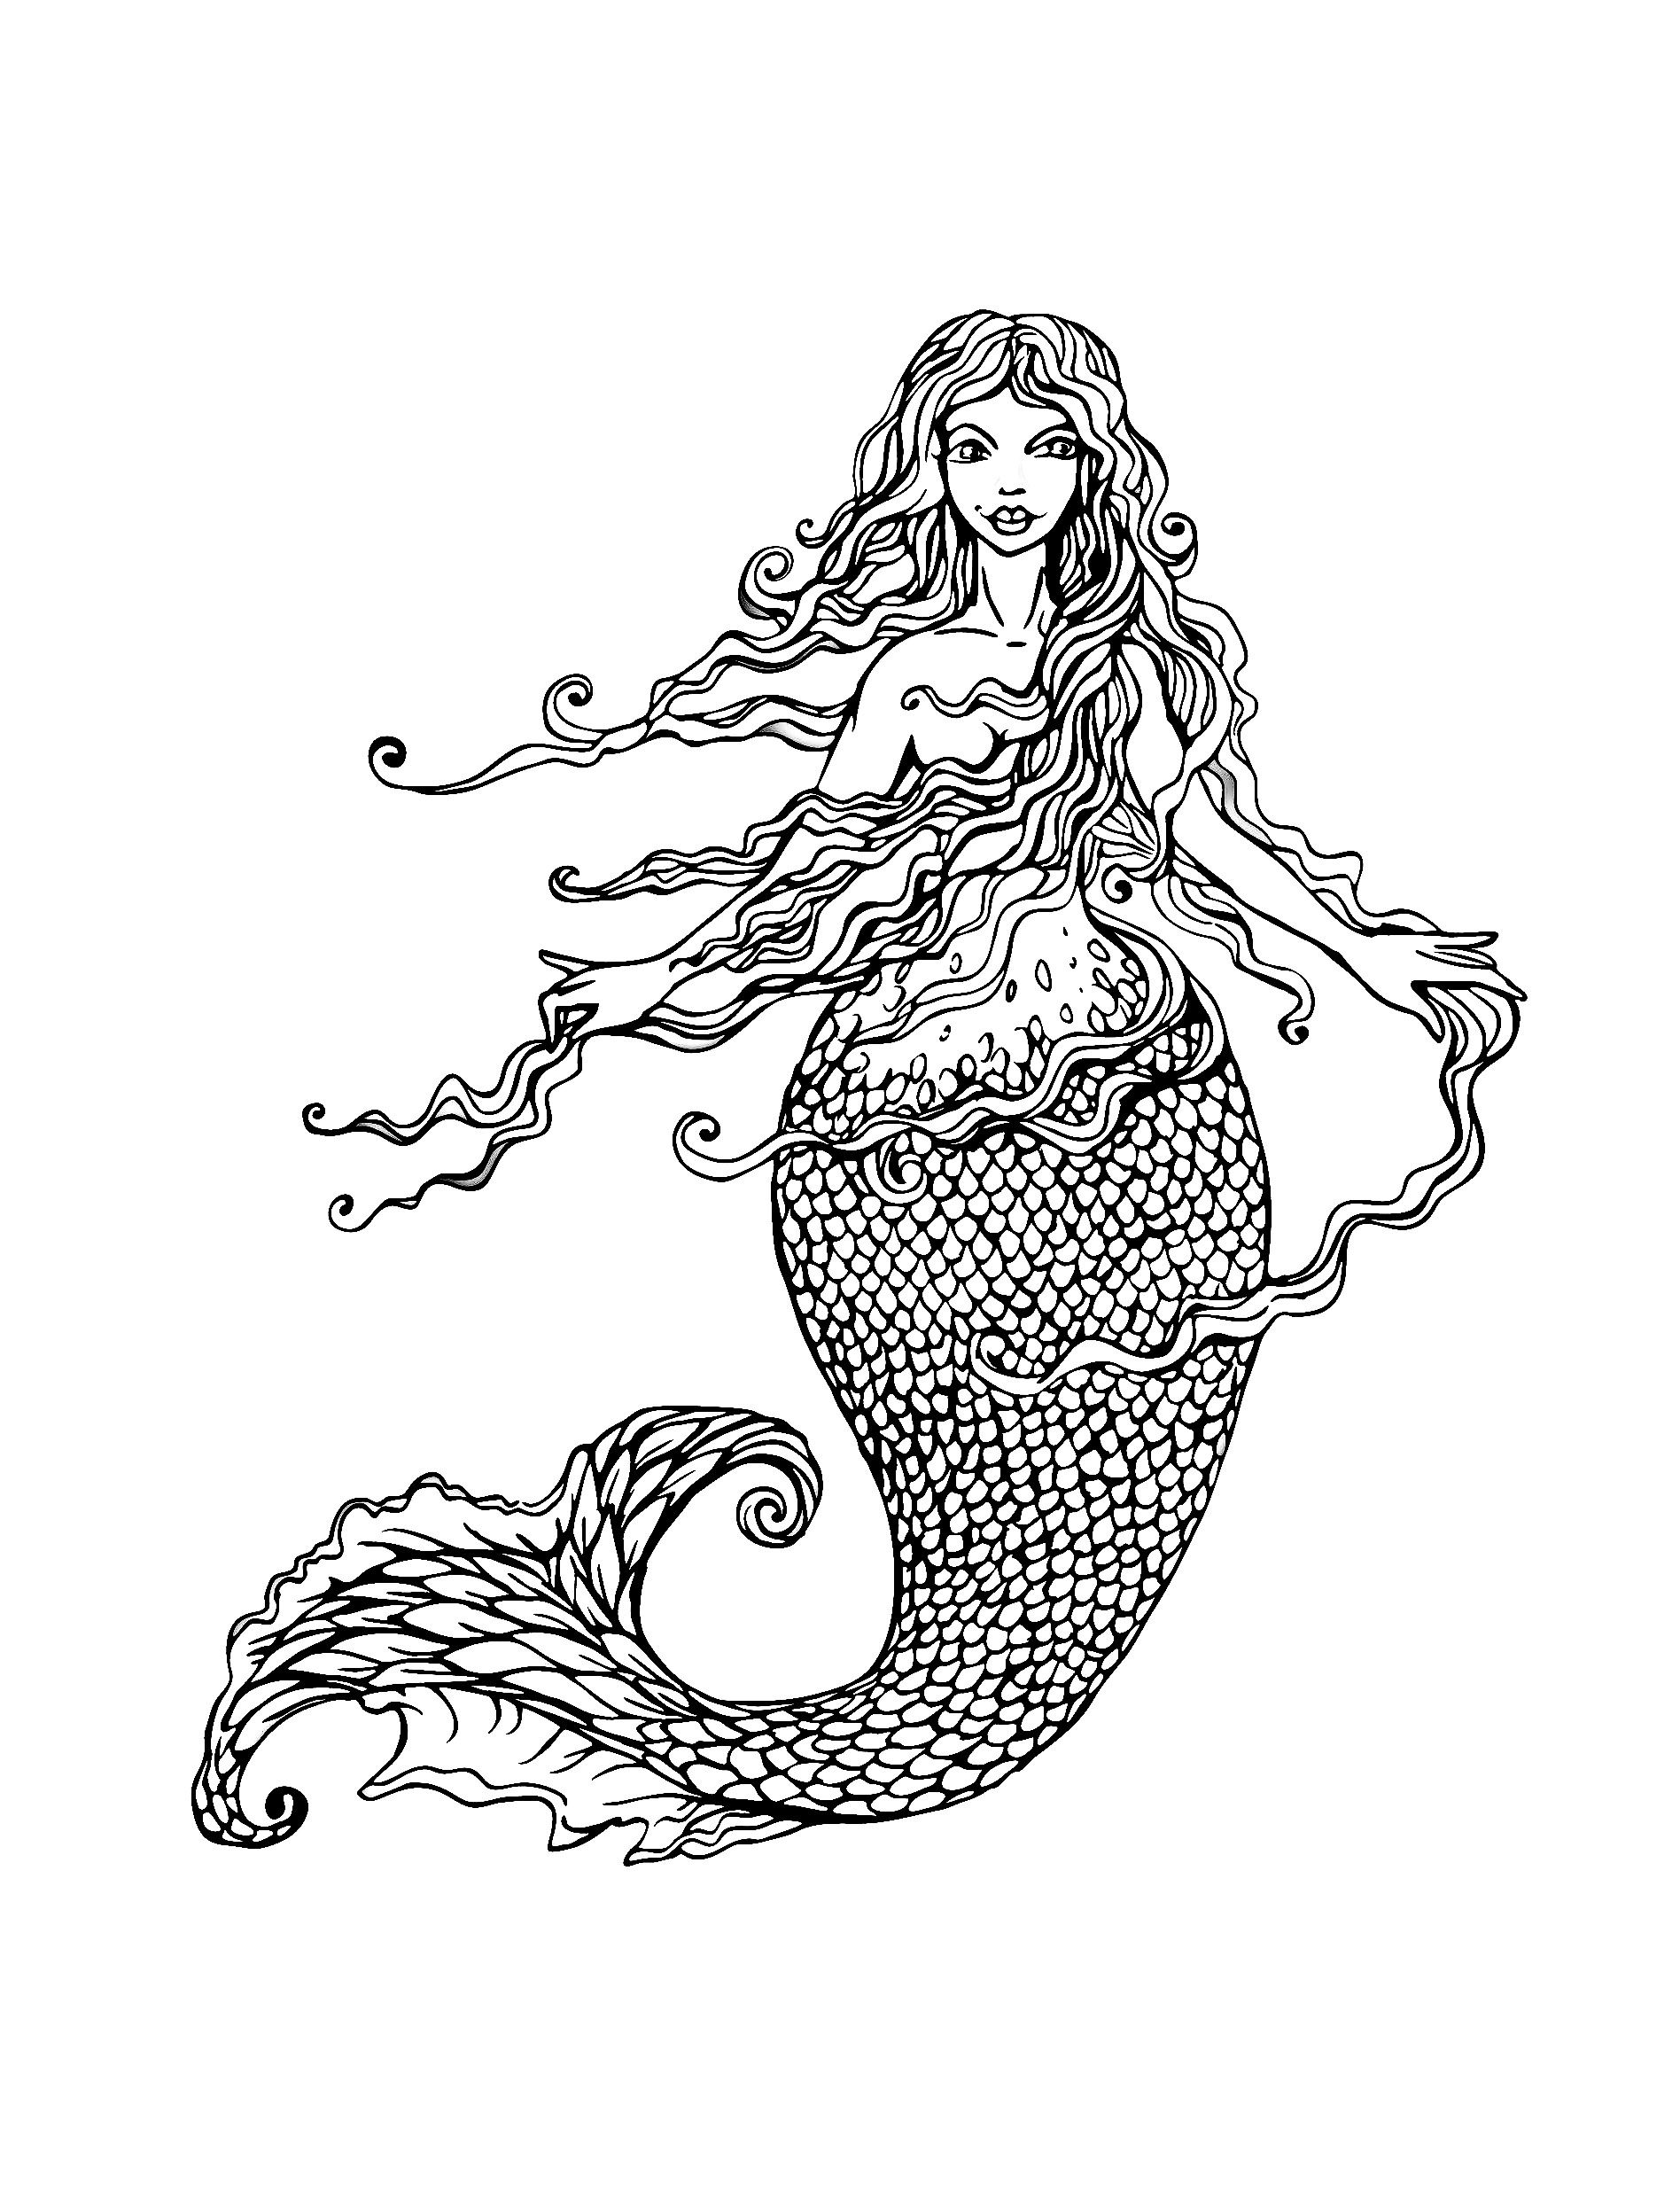 Adult Mermaid With Long Hair By Coloring Pages Printable And Book To Print For Free Find More Online Kids Adults Of